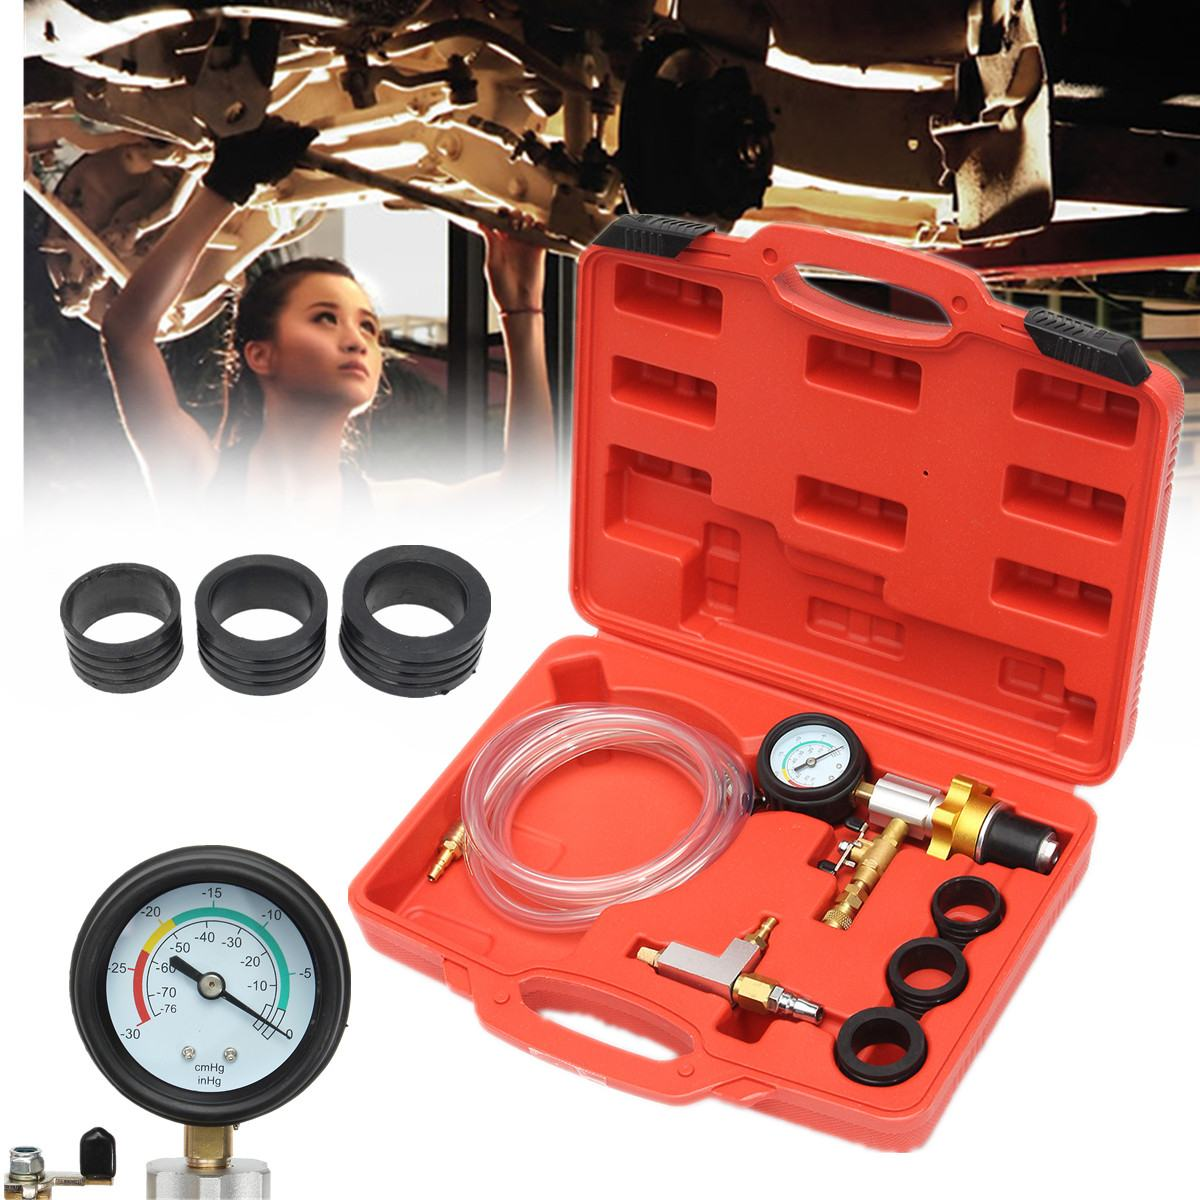 Autoleader Vacuum Cooling System Auto Car Radiator Coolant Refill & Purging Tool Gauge Kit With Air Pump Car Wash Easy Connect